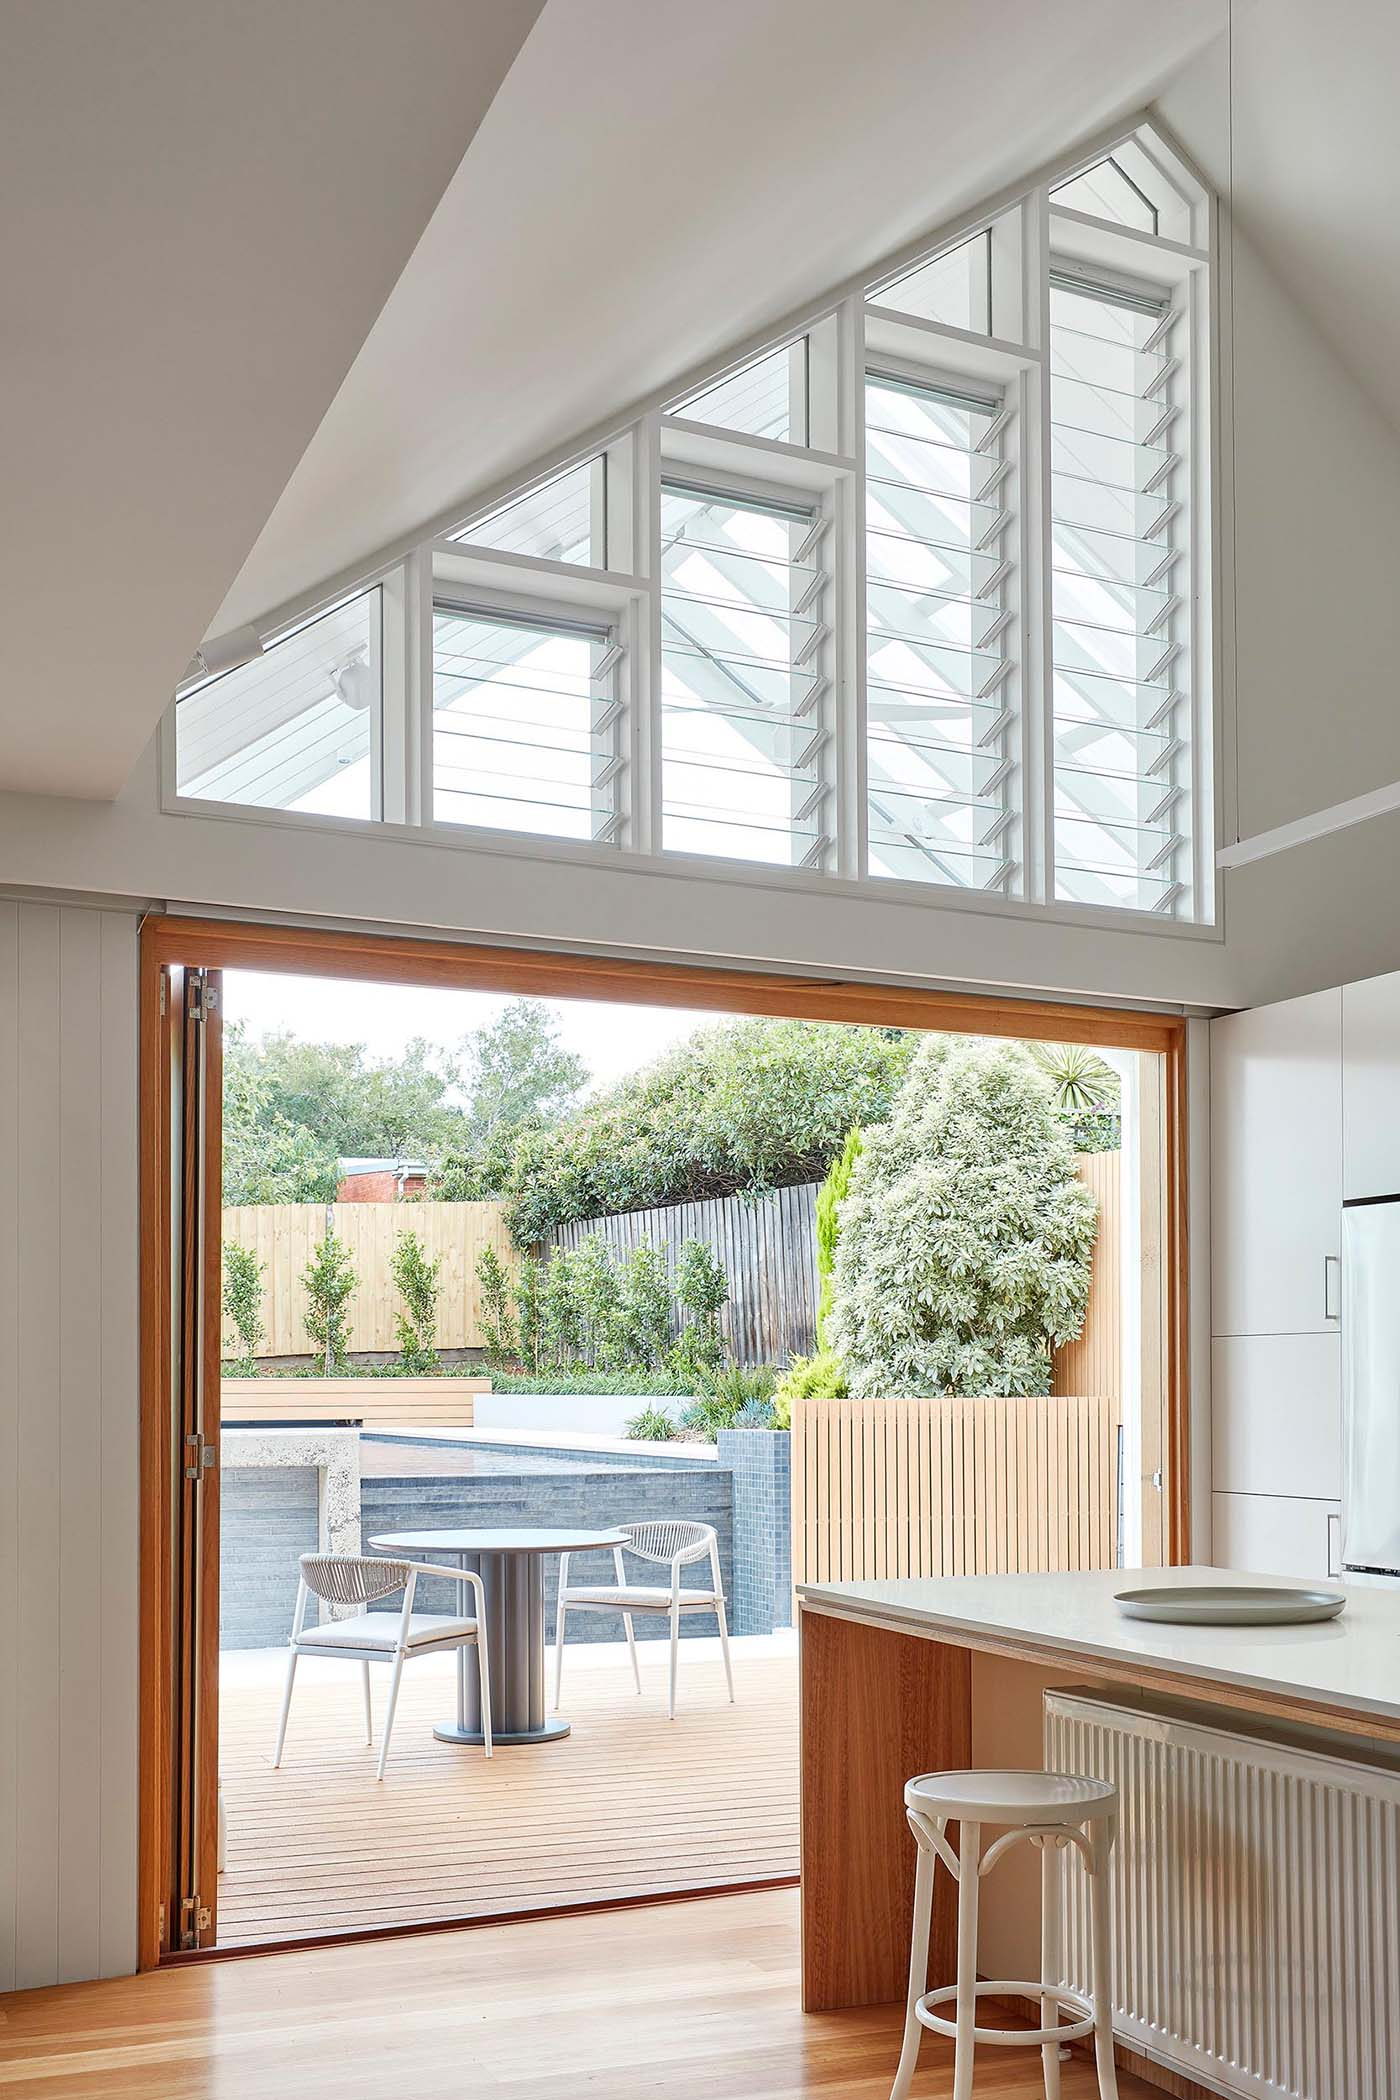 Adjacent to this modern kitchen are folding glass doors that open to a space for outdoor dining, while above, louver windows help with the air flow.